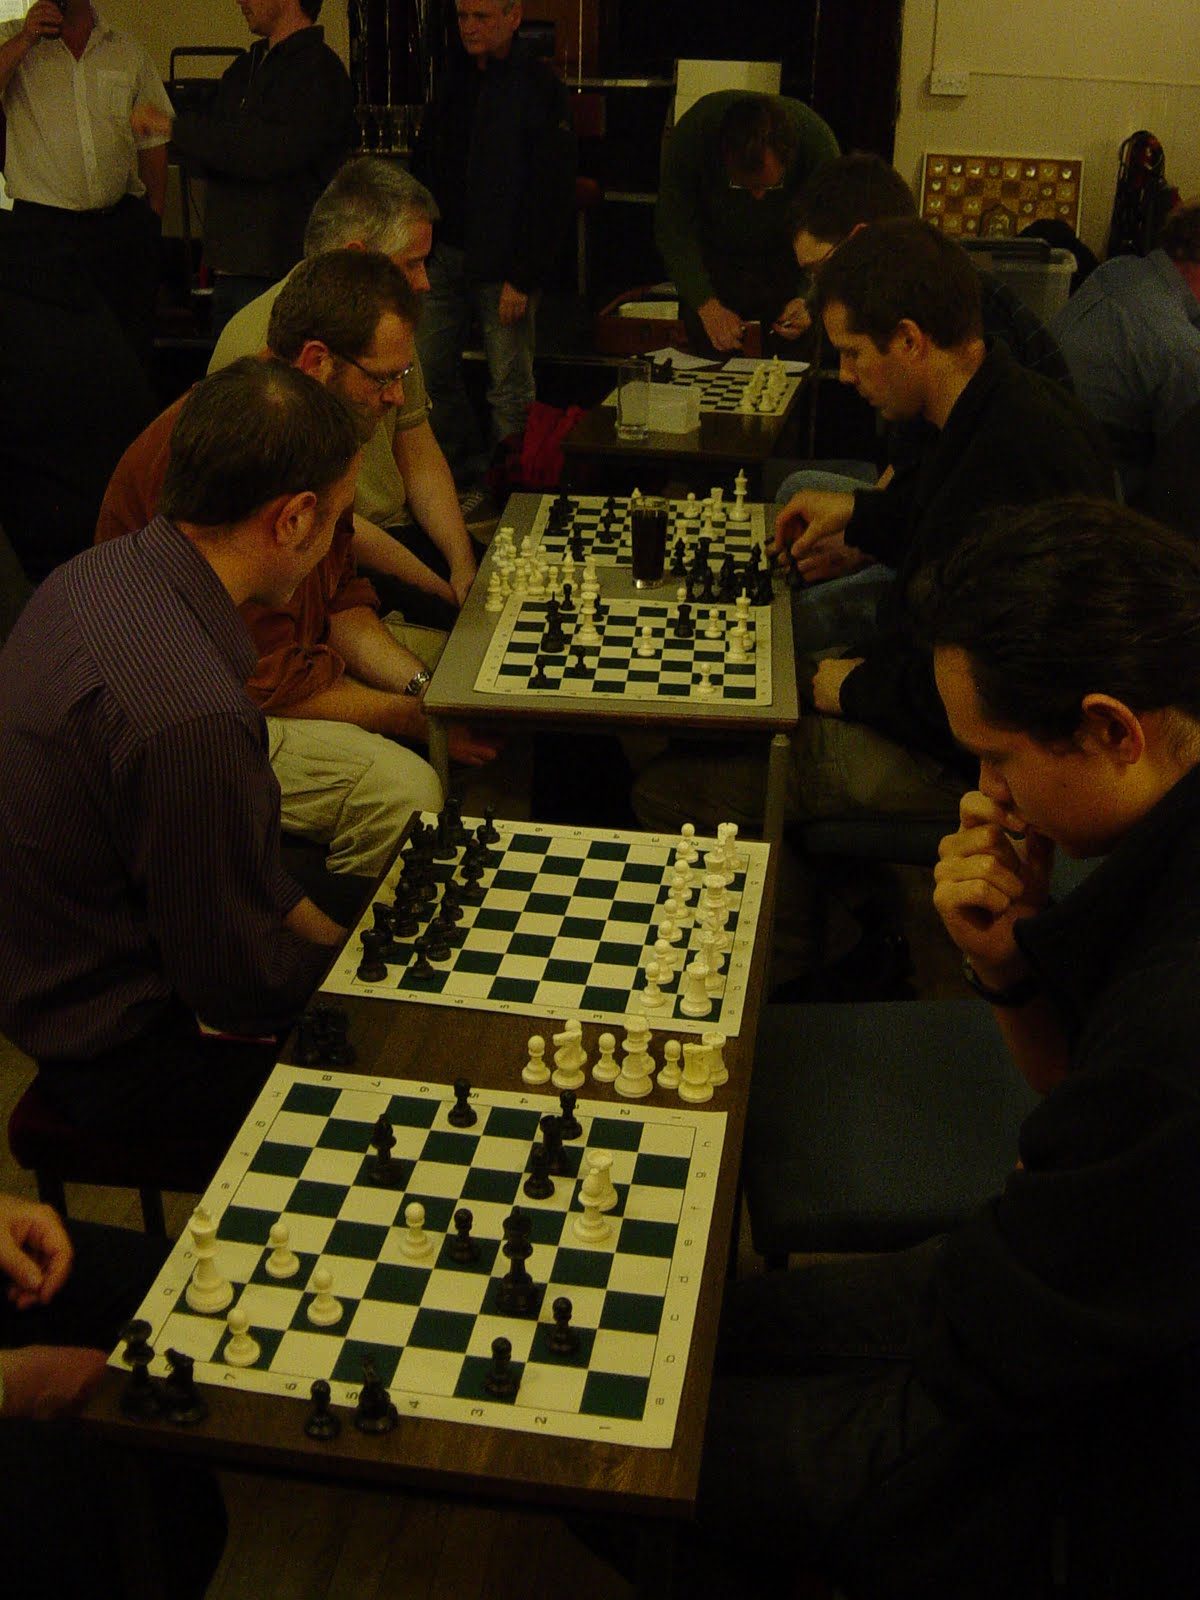 2011 May Hebden Bridge Chess Club Checkmate Diagram A Is Called Quotat Board 5 Prize Winner Matthew Wedge Roberts Front Right Finishes Off Jon Hughes Of Huddersfield B His 3rd Round Victim